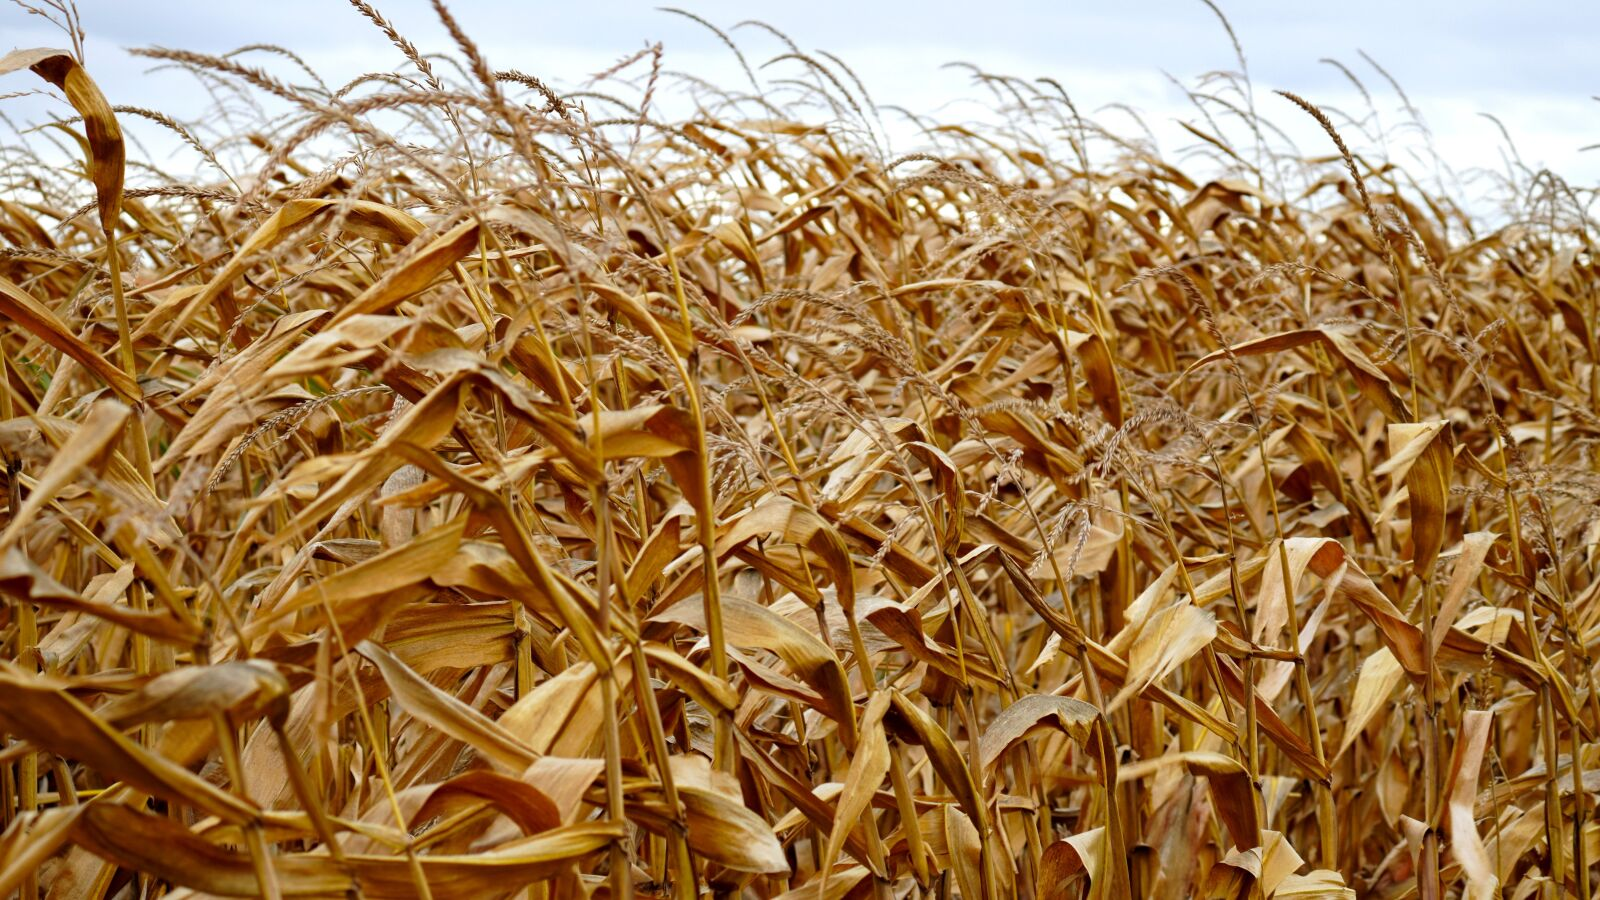 """Sony a6400 sample photo. """"Corn, cornfield, agriculture"""" photography"""